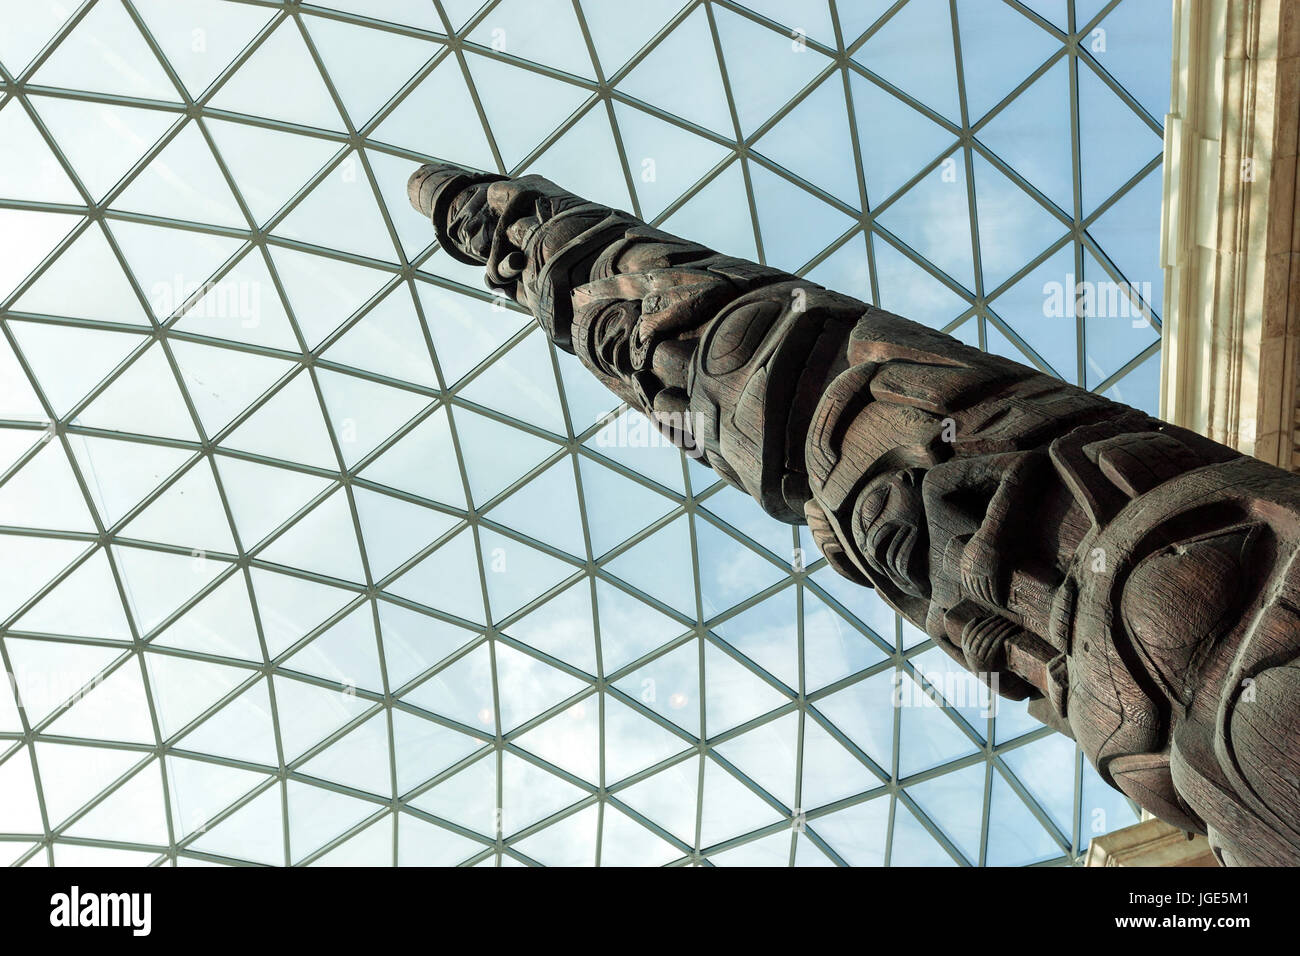 Haida Totem pole from British Columbia, The British Museum Elizabeth II Great Court designed by Foster and Partners, - Stock Image